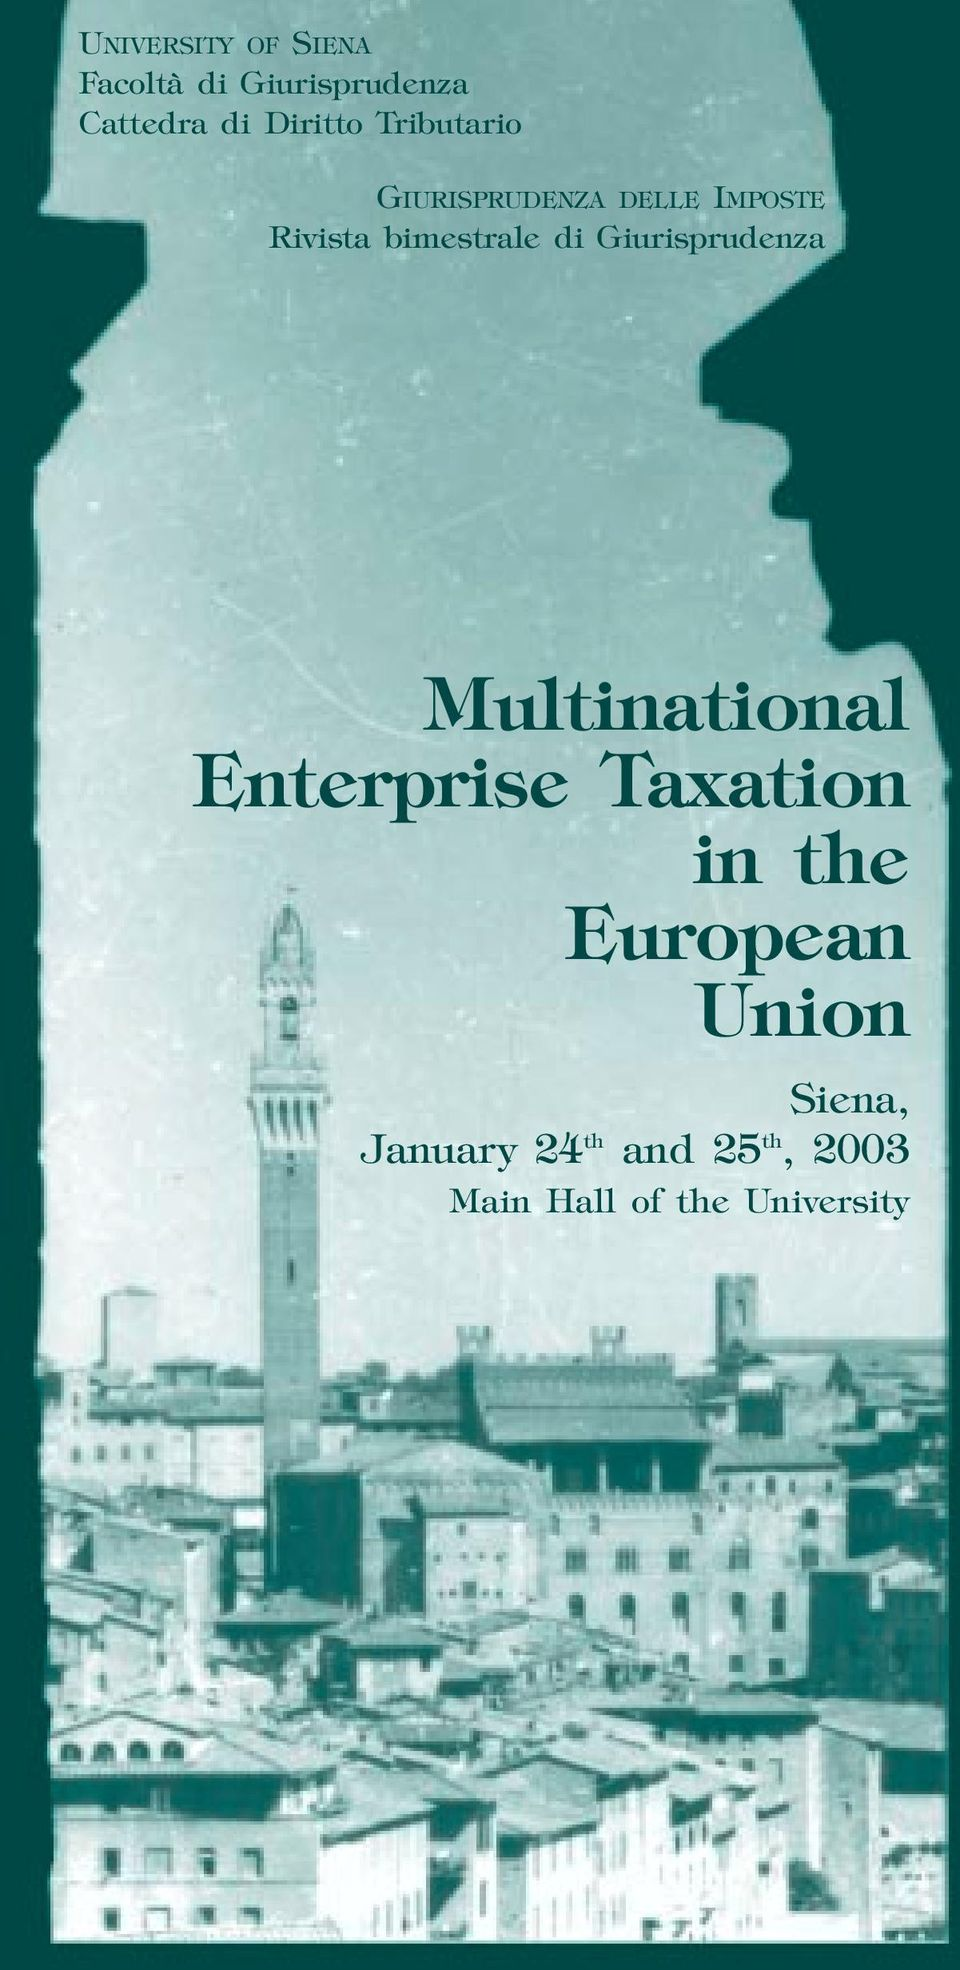 Giurisprudenza Multinational Enterprise Taxation in the European